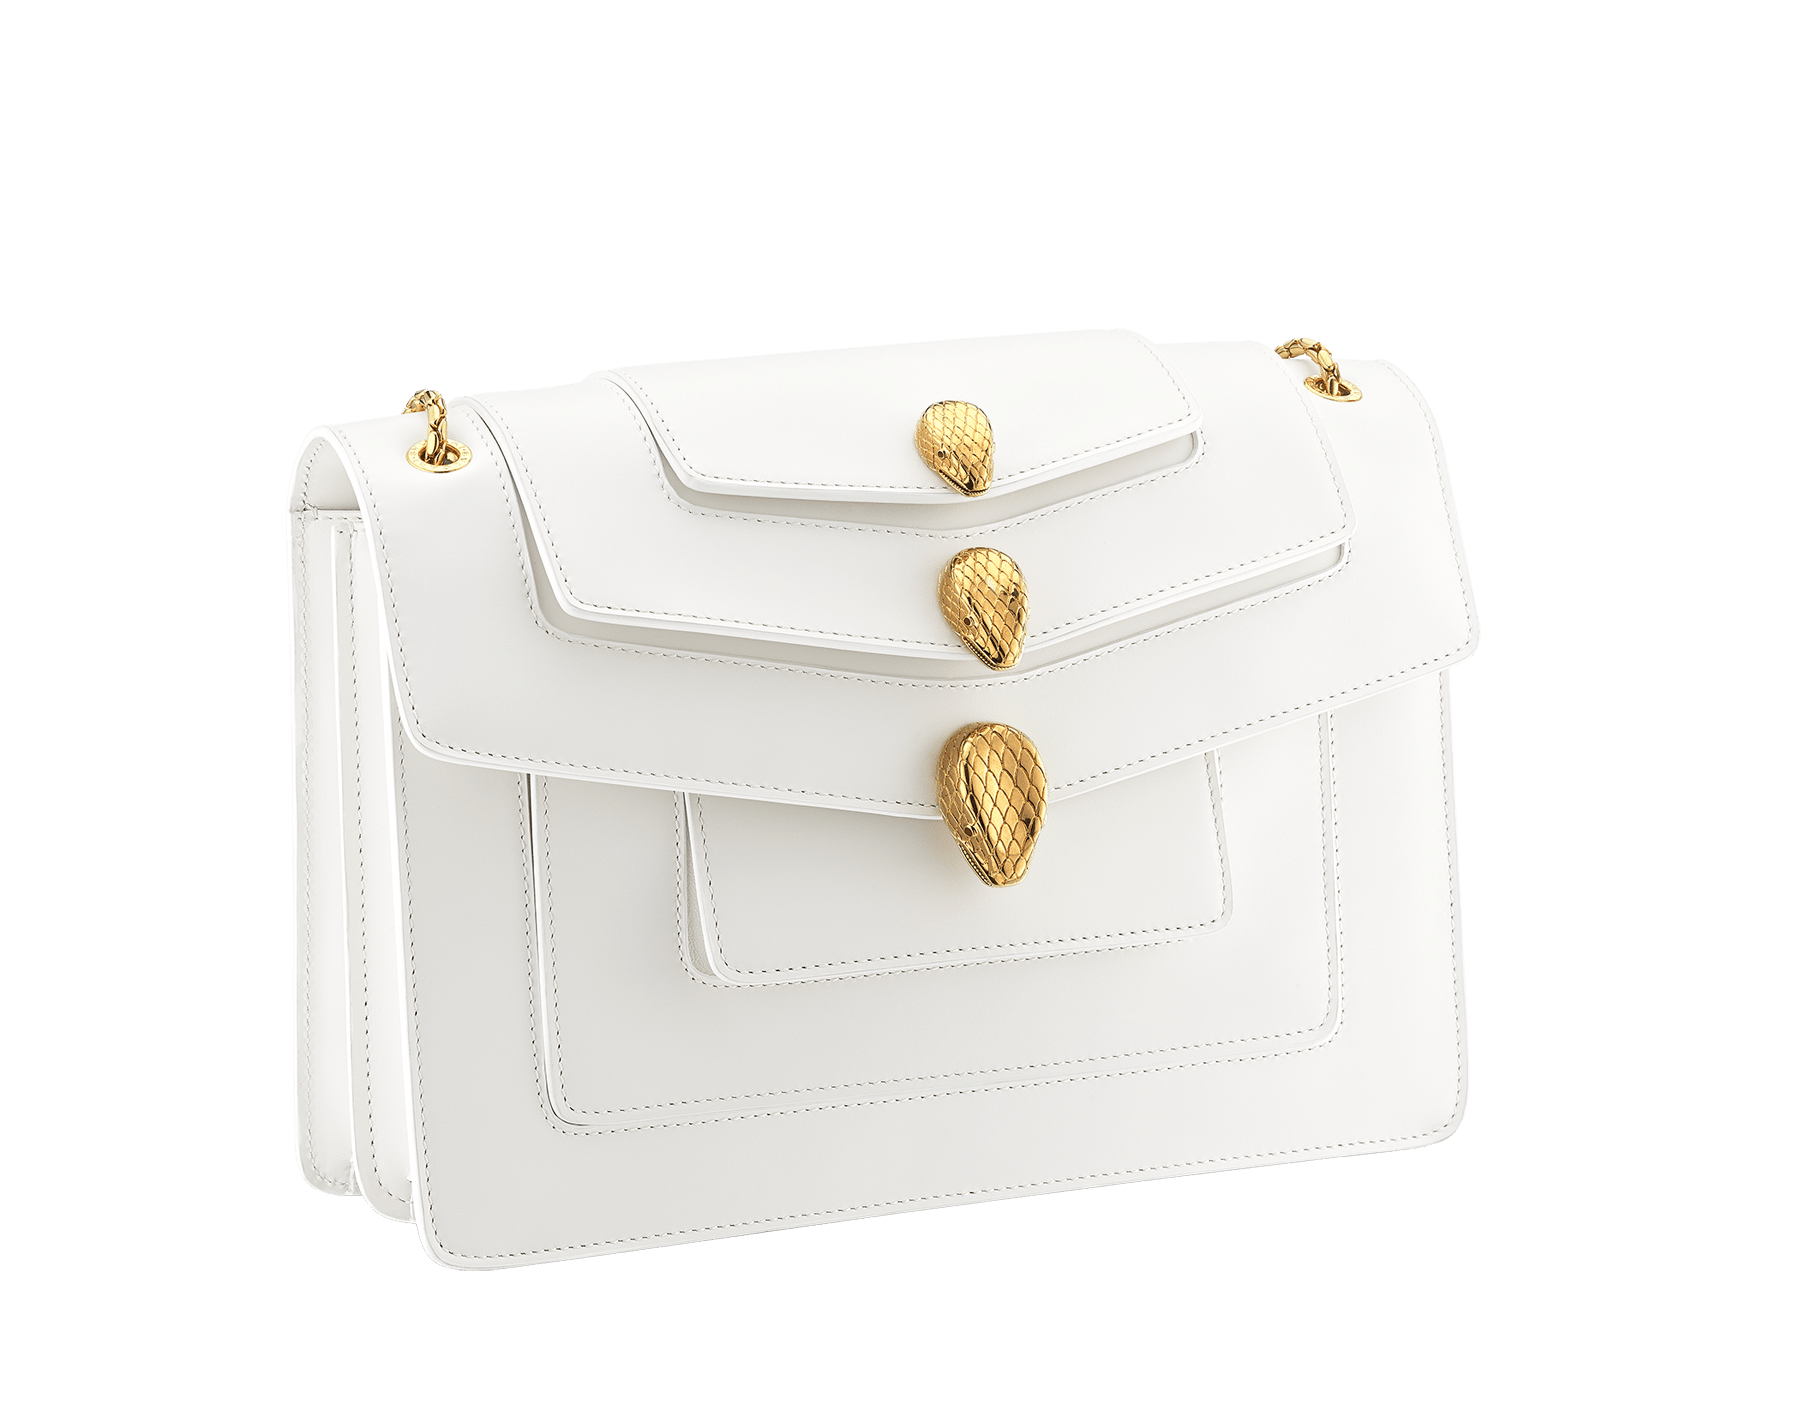 Alexander Wang x Bvlgari Triplette shoulder bag in smooth white calf leather. New triple Serpenti head closure in antique gold plated brass with tempting red enamel eyes. Limited edition. 288744 image 2